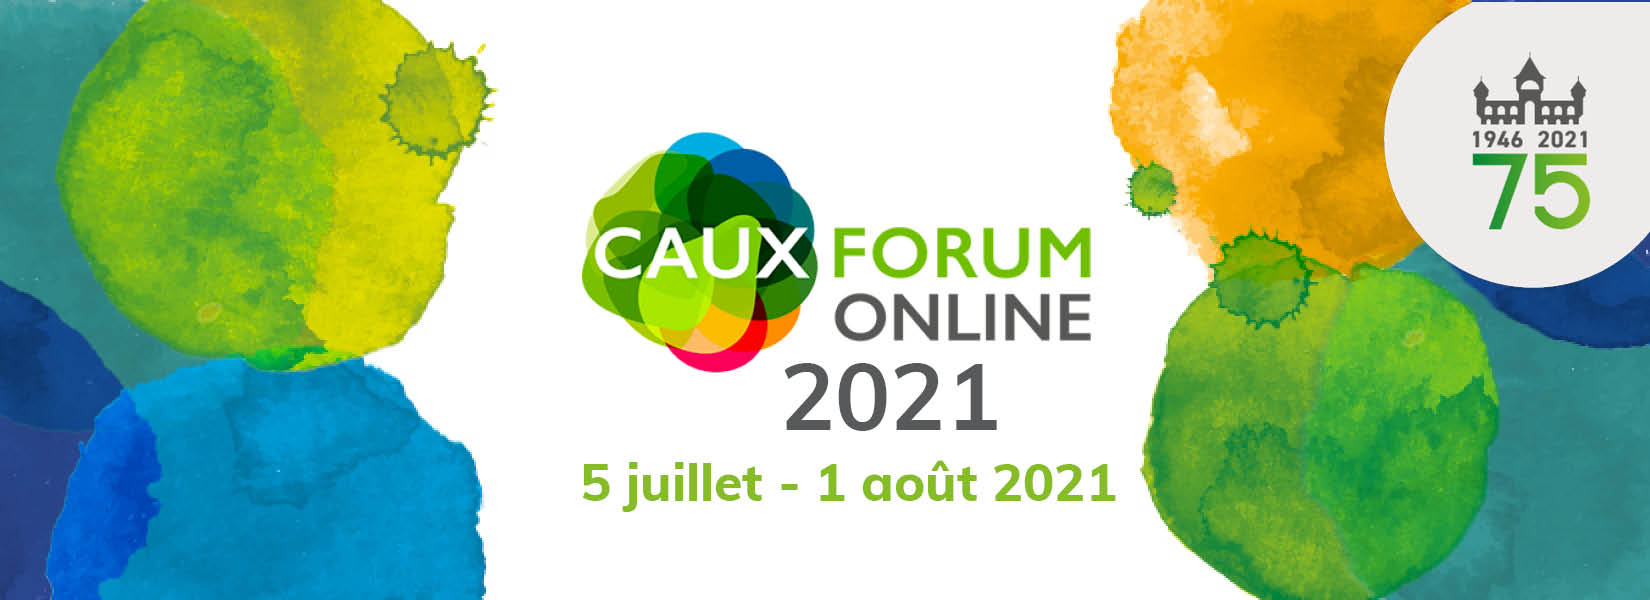 Caux Forum Online neutral 2021 FR SAVE THE DATE homepage slider.jpg